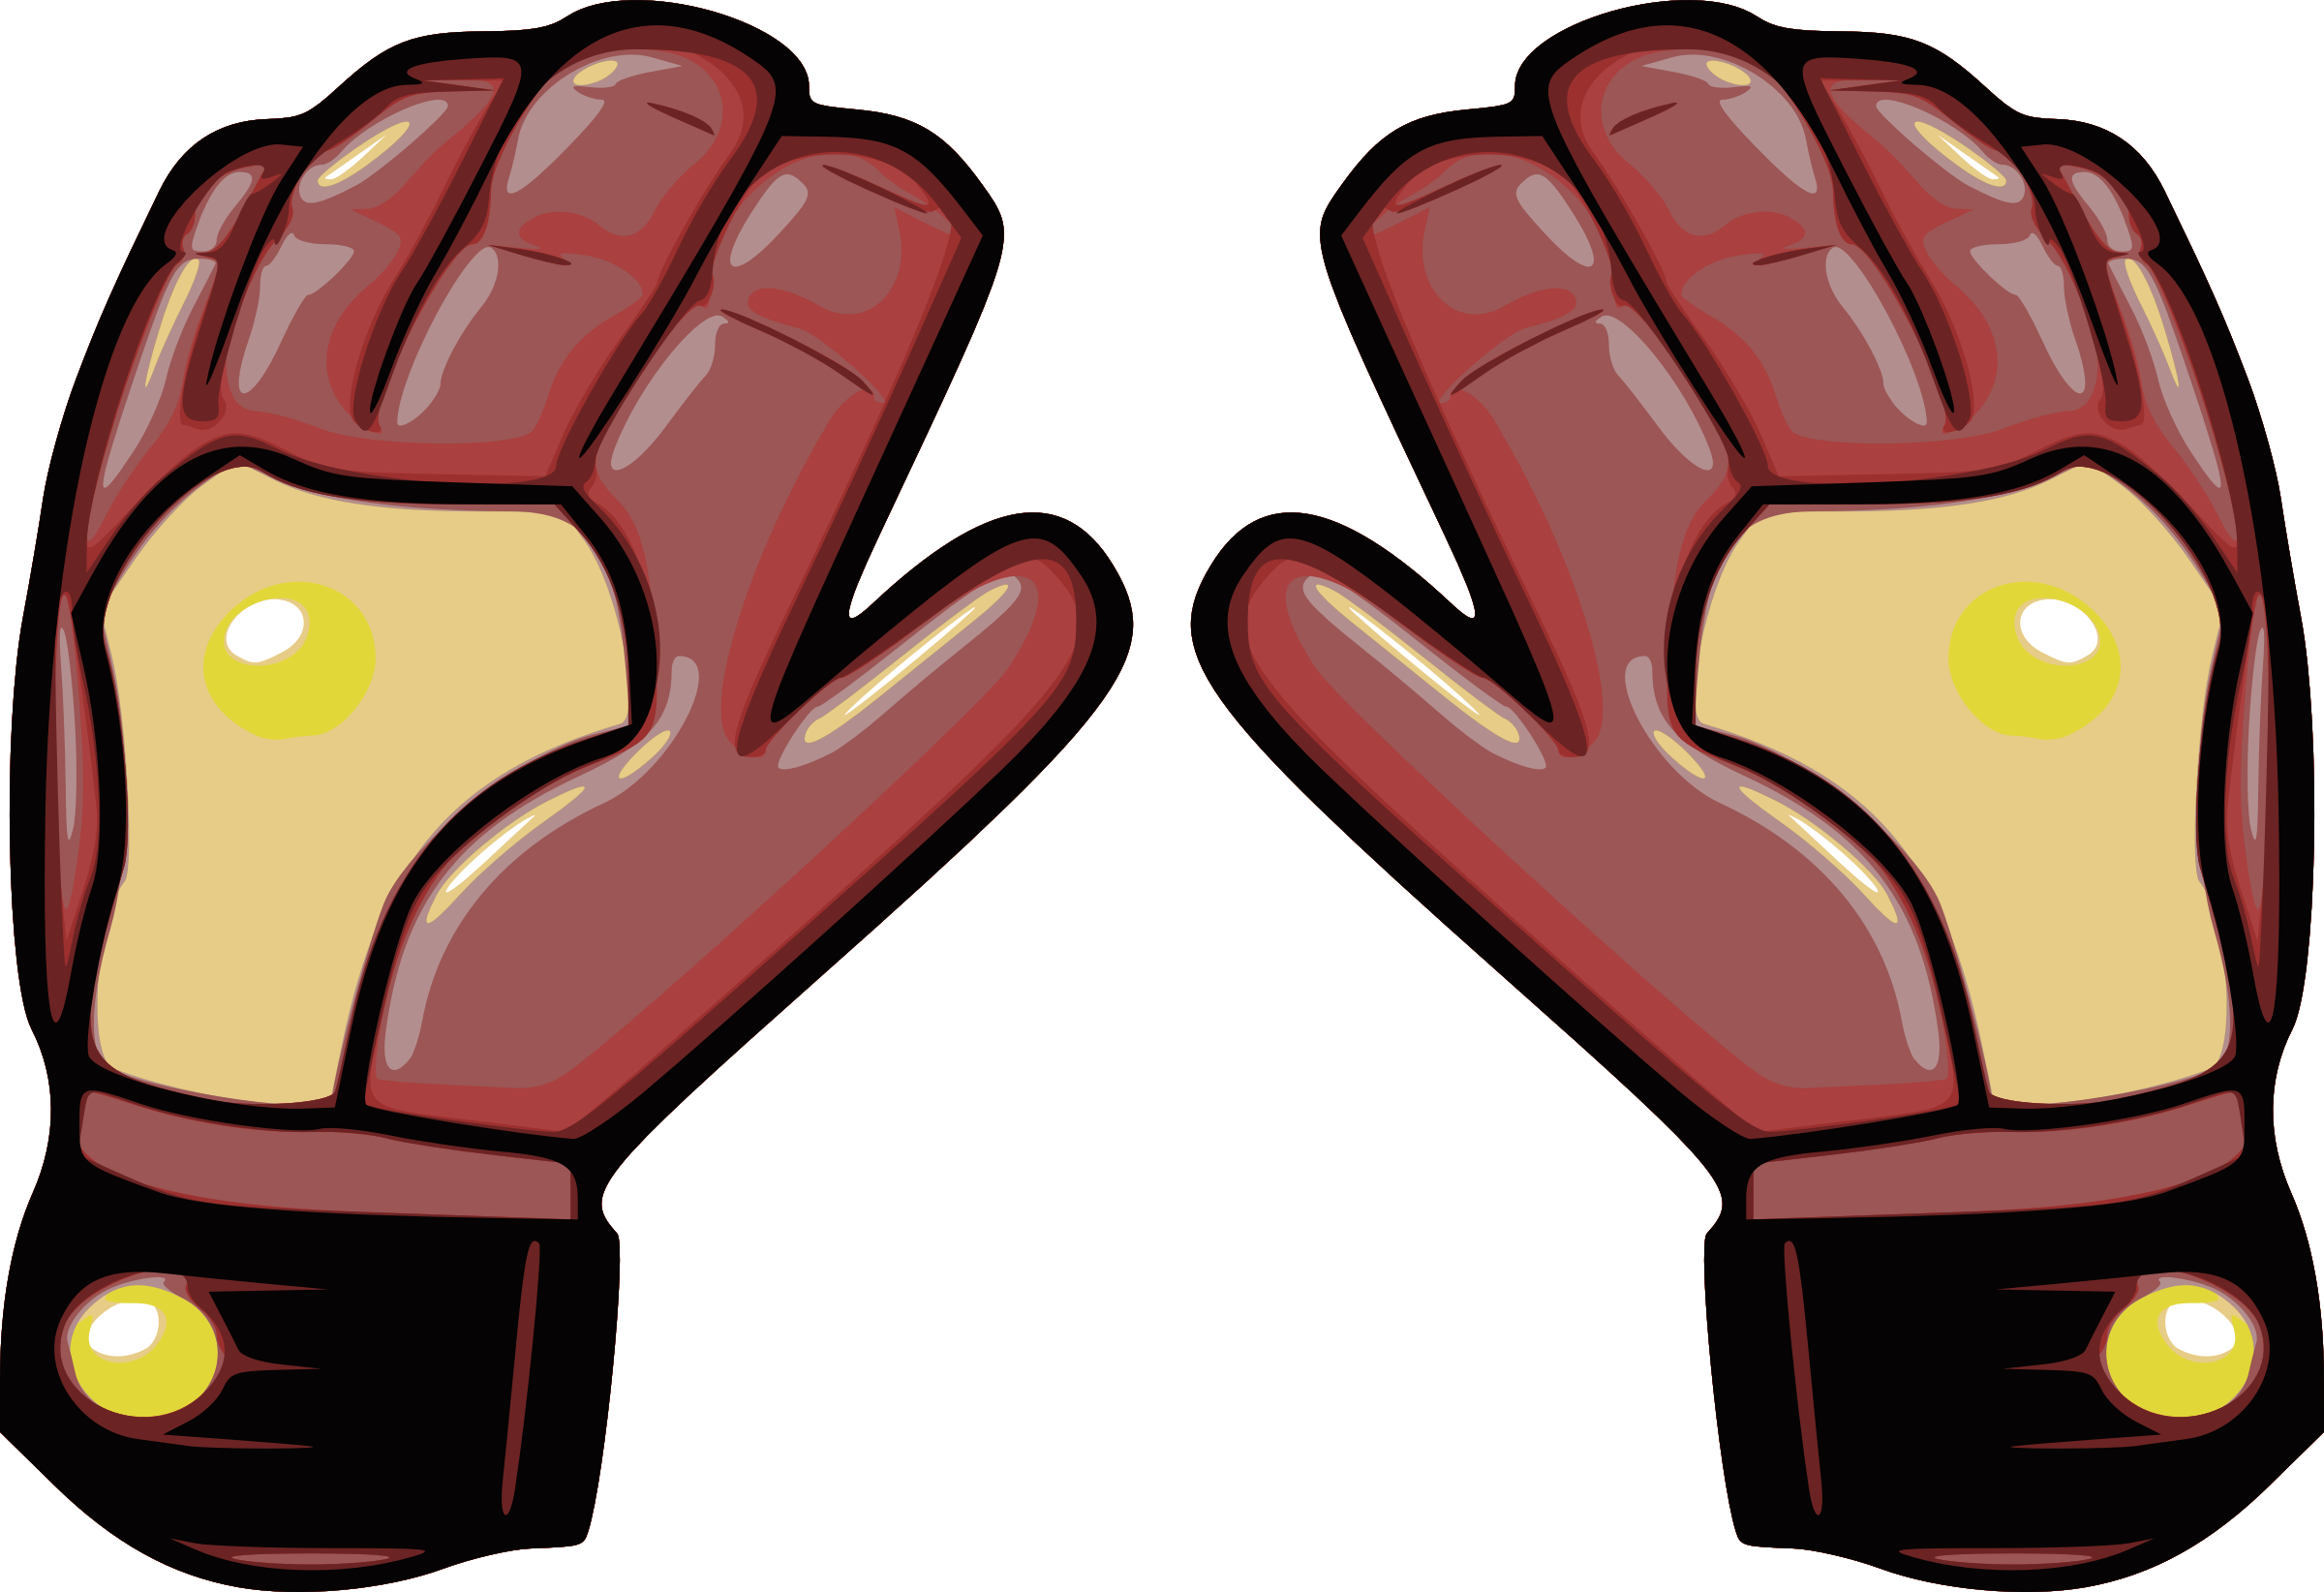 png royalty free library Big image png. Gloves clipart.